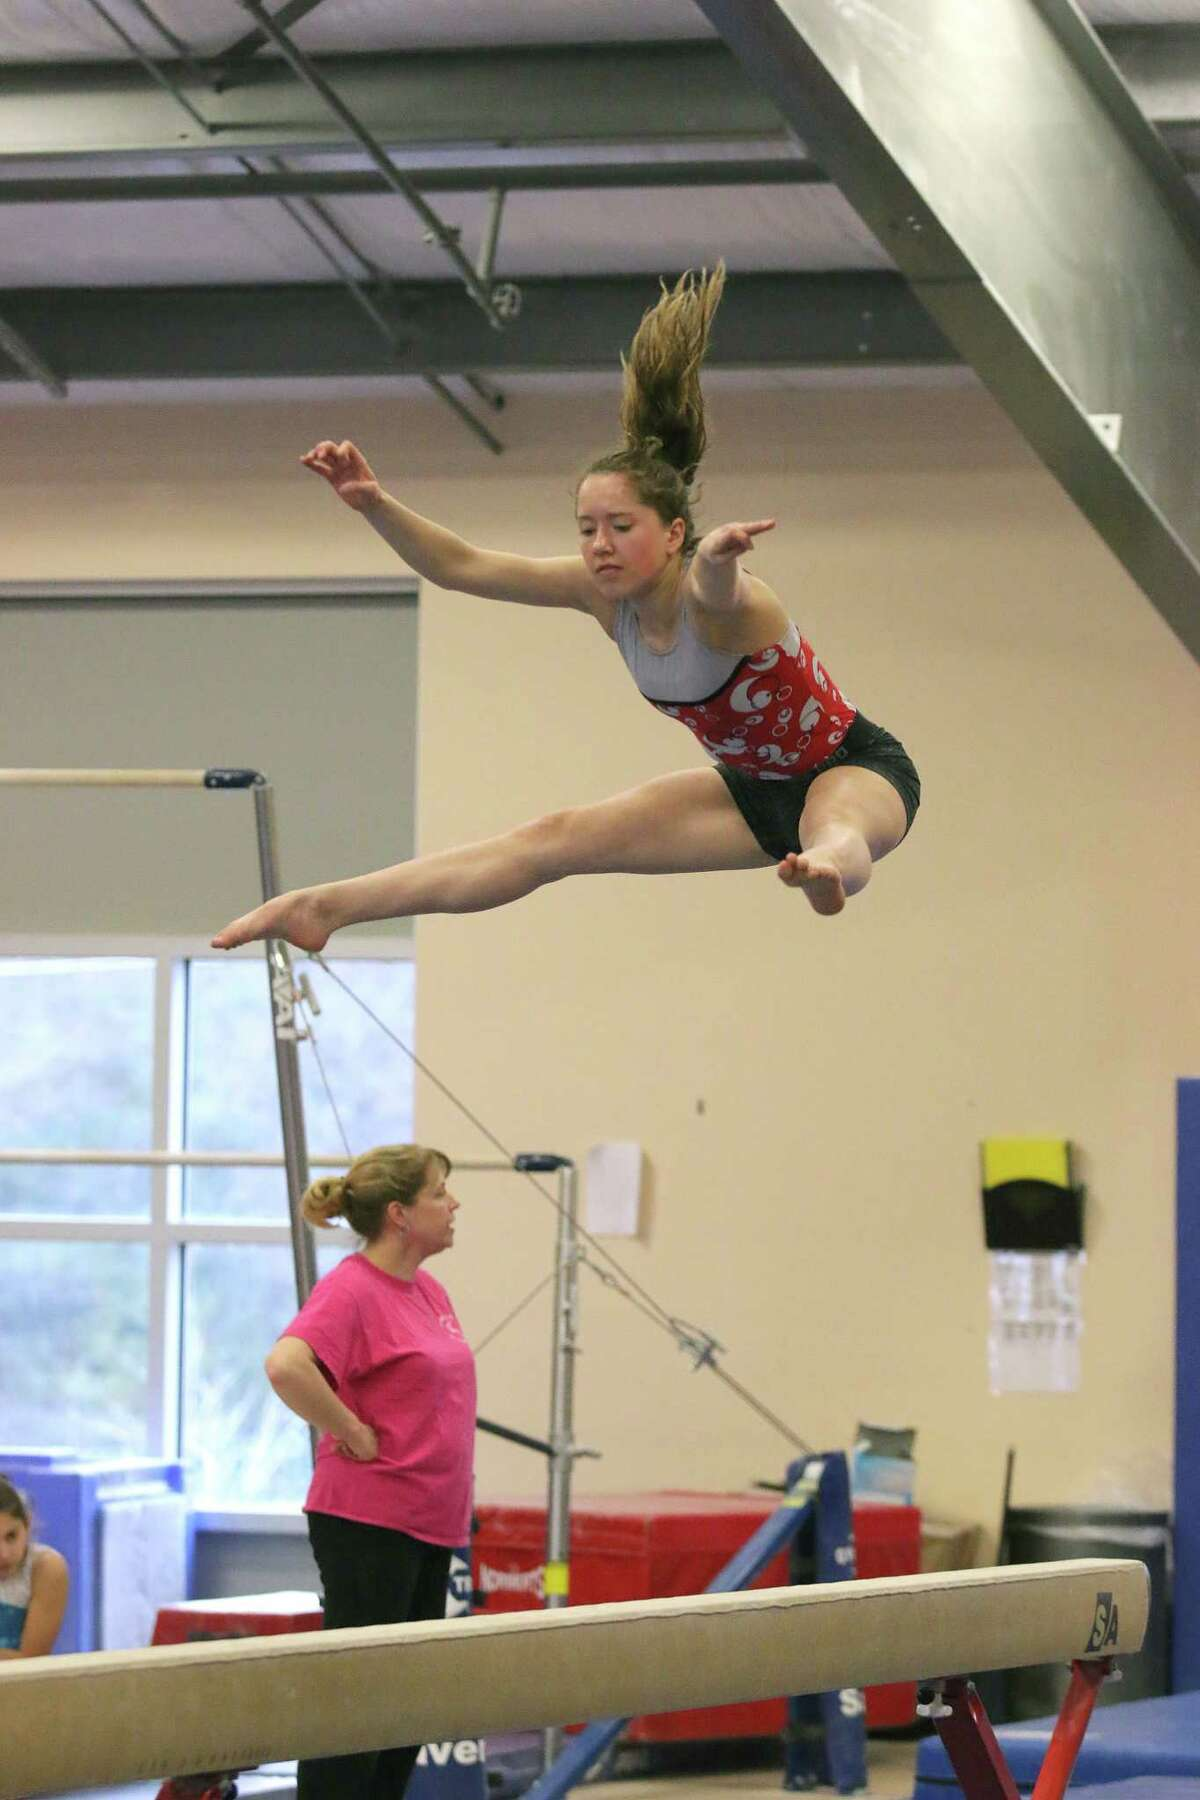 Gymnast Julia Van Horne practices on the balance beam Thursday with the Saratoga Regional YMCA Springettes at their gym in Wilton March 31, 2016. Springettes' coach Kim Hewitt stands behind. (Ed Burke/Special to The Times Union)